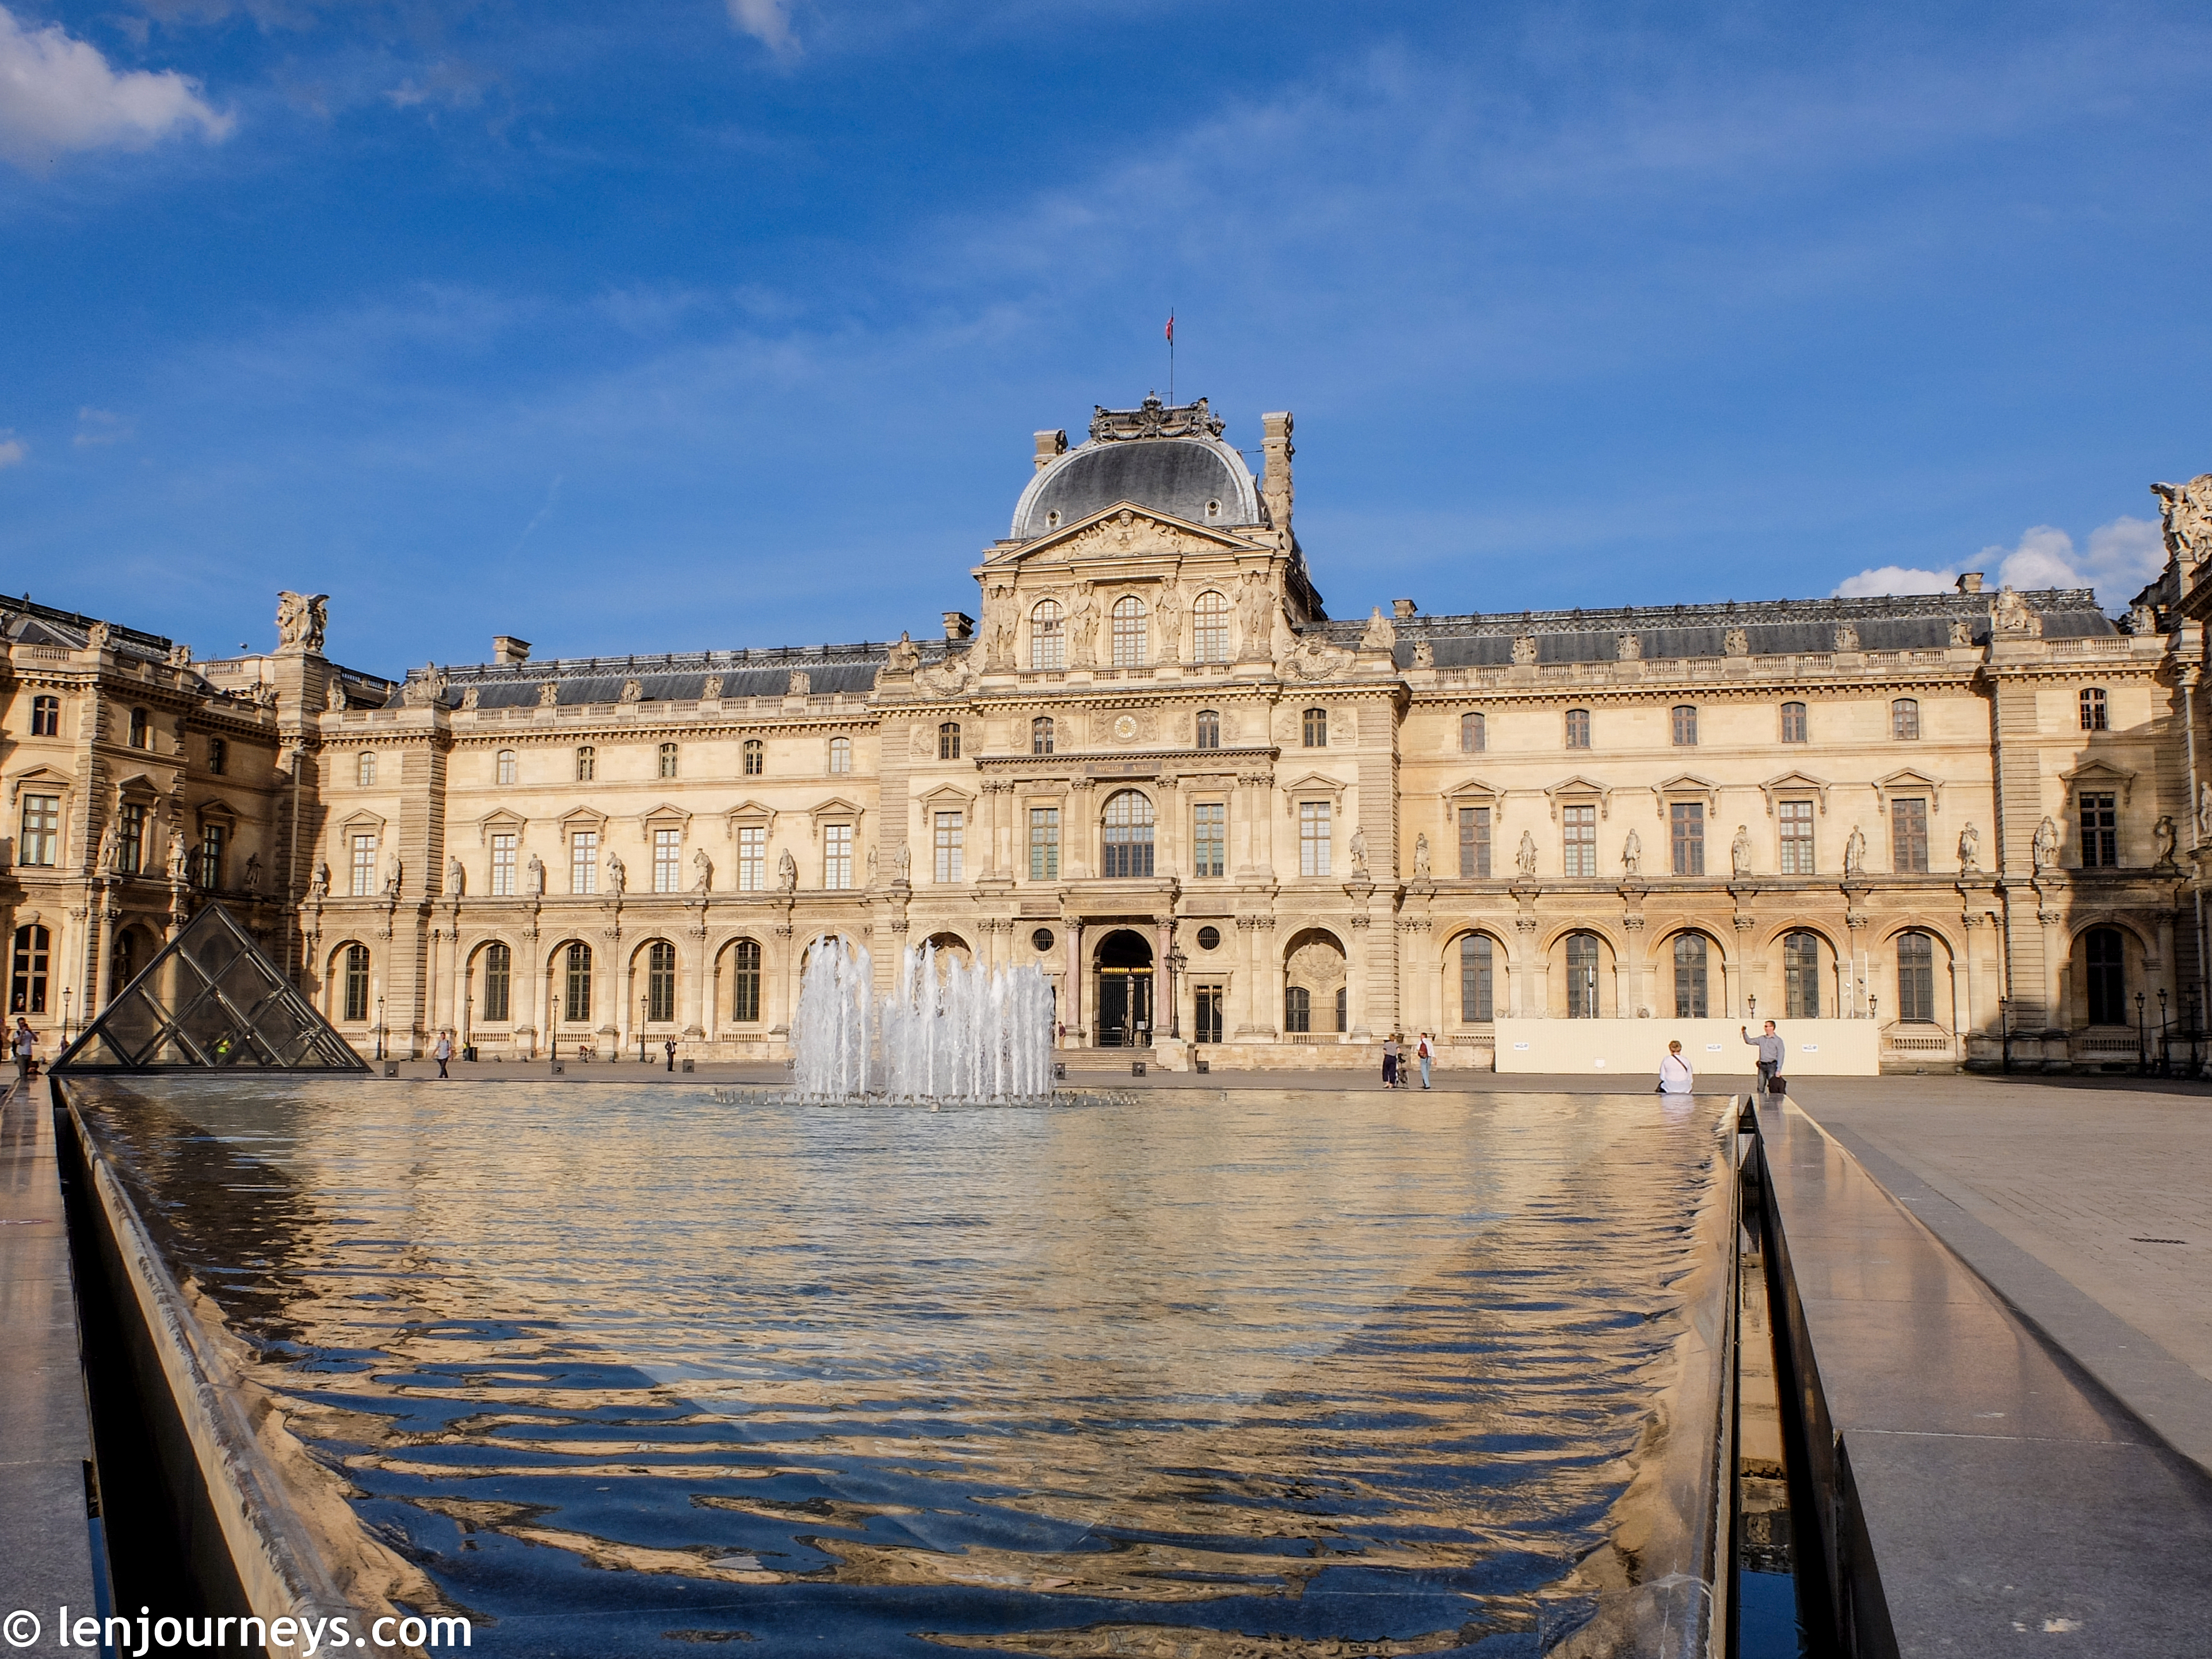 A wing of the Louvre